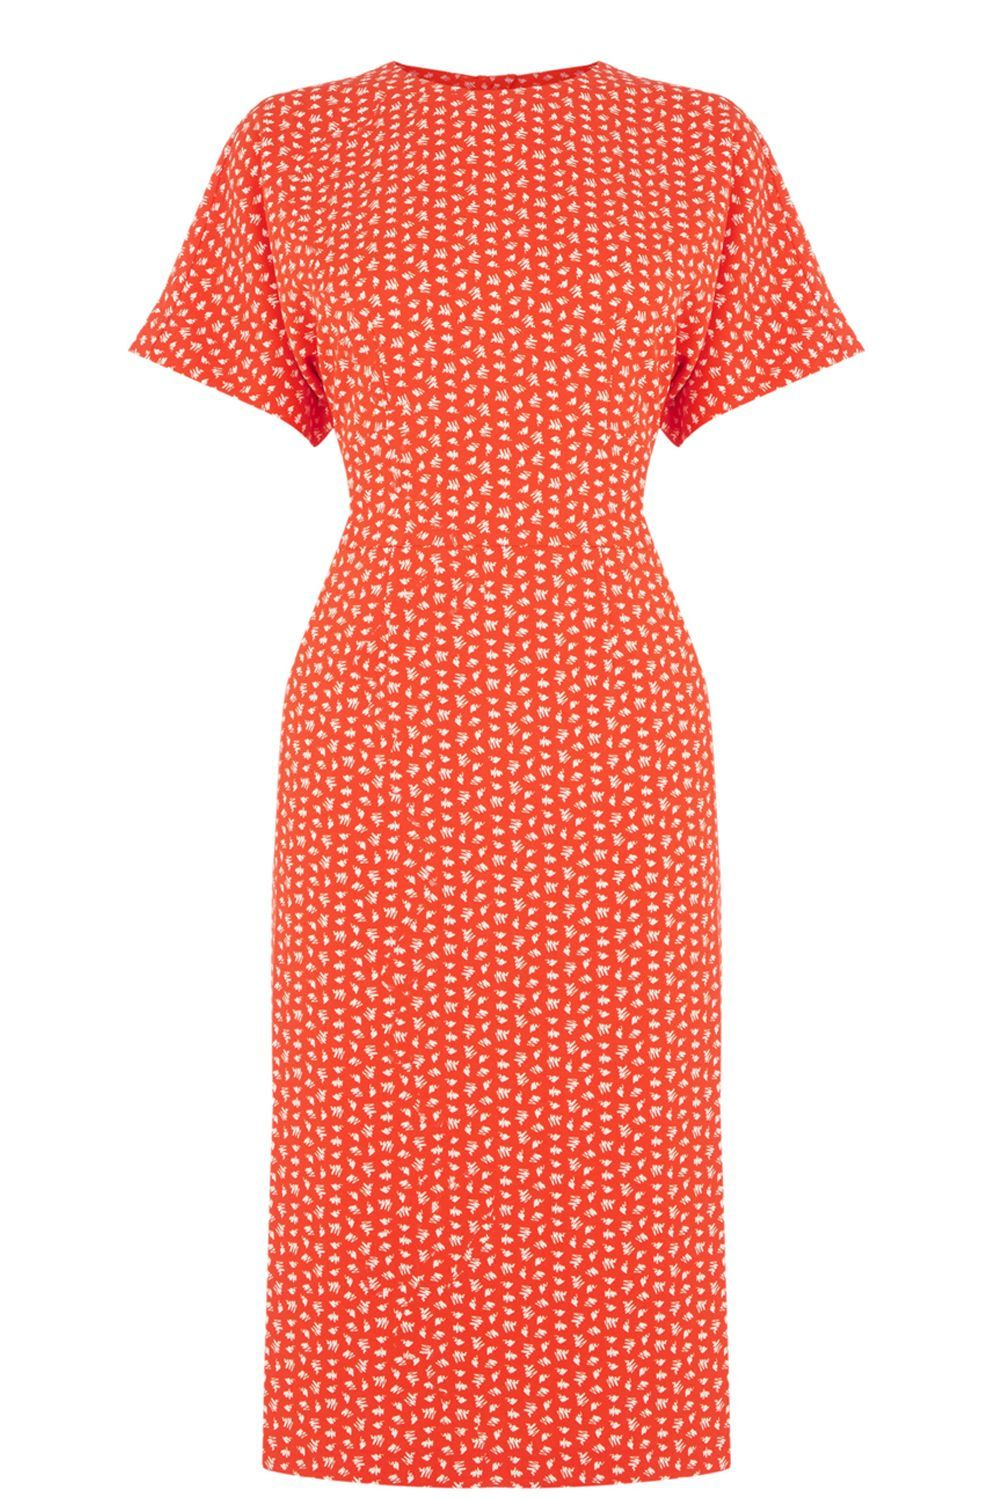 Squiggle Print Midi Dress, Red - style: shift; length: calf length; pattern: polka dot; secondary colour: yellow; predominant colour: bright orange; occasions: evening; fit: body skimming; fibres: polyester/polyamide - stretch; neckline: crew; sleeve length: short sleeve; sleeve style: standard; texture group: crepes; pattern type: fabric; multicoloured: multicoloured; season: s/s 2016; wardrobe: event